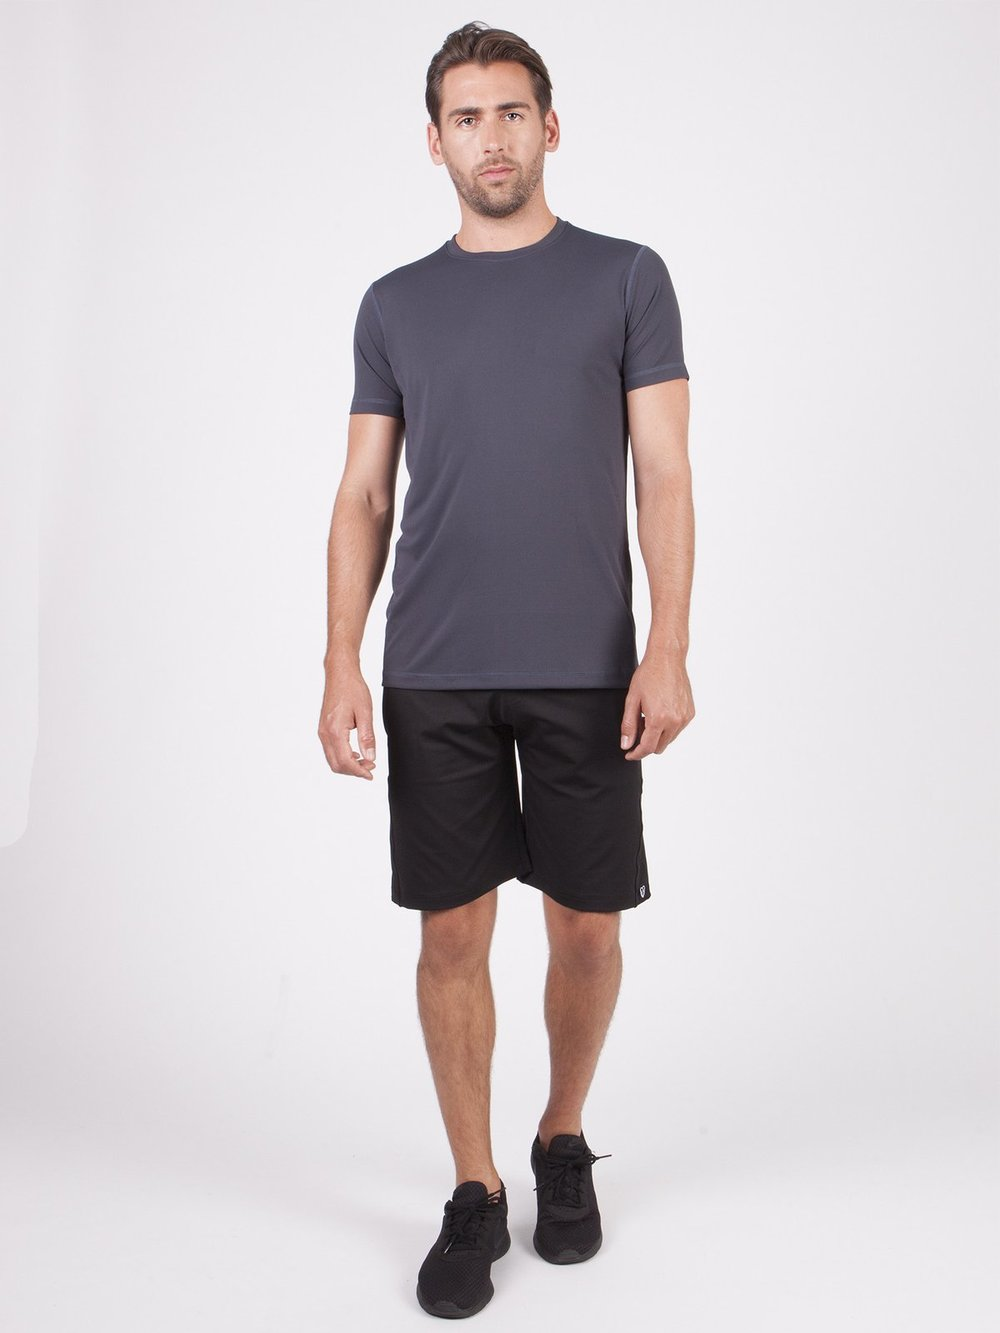 Pulse_Elite_T-shirt_Charcoal_1200x.jpg